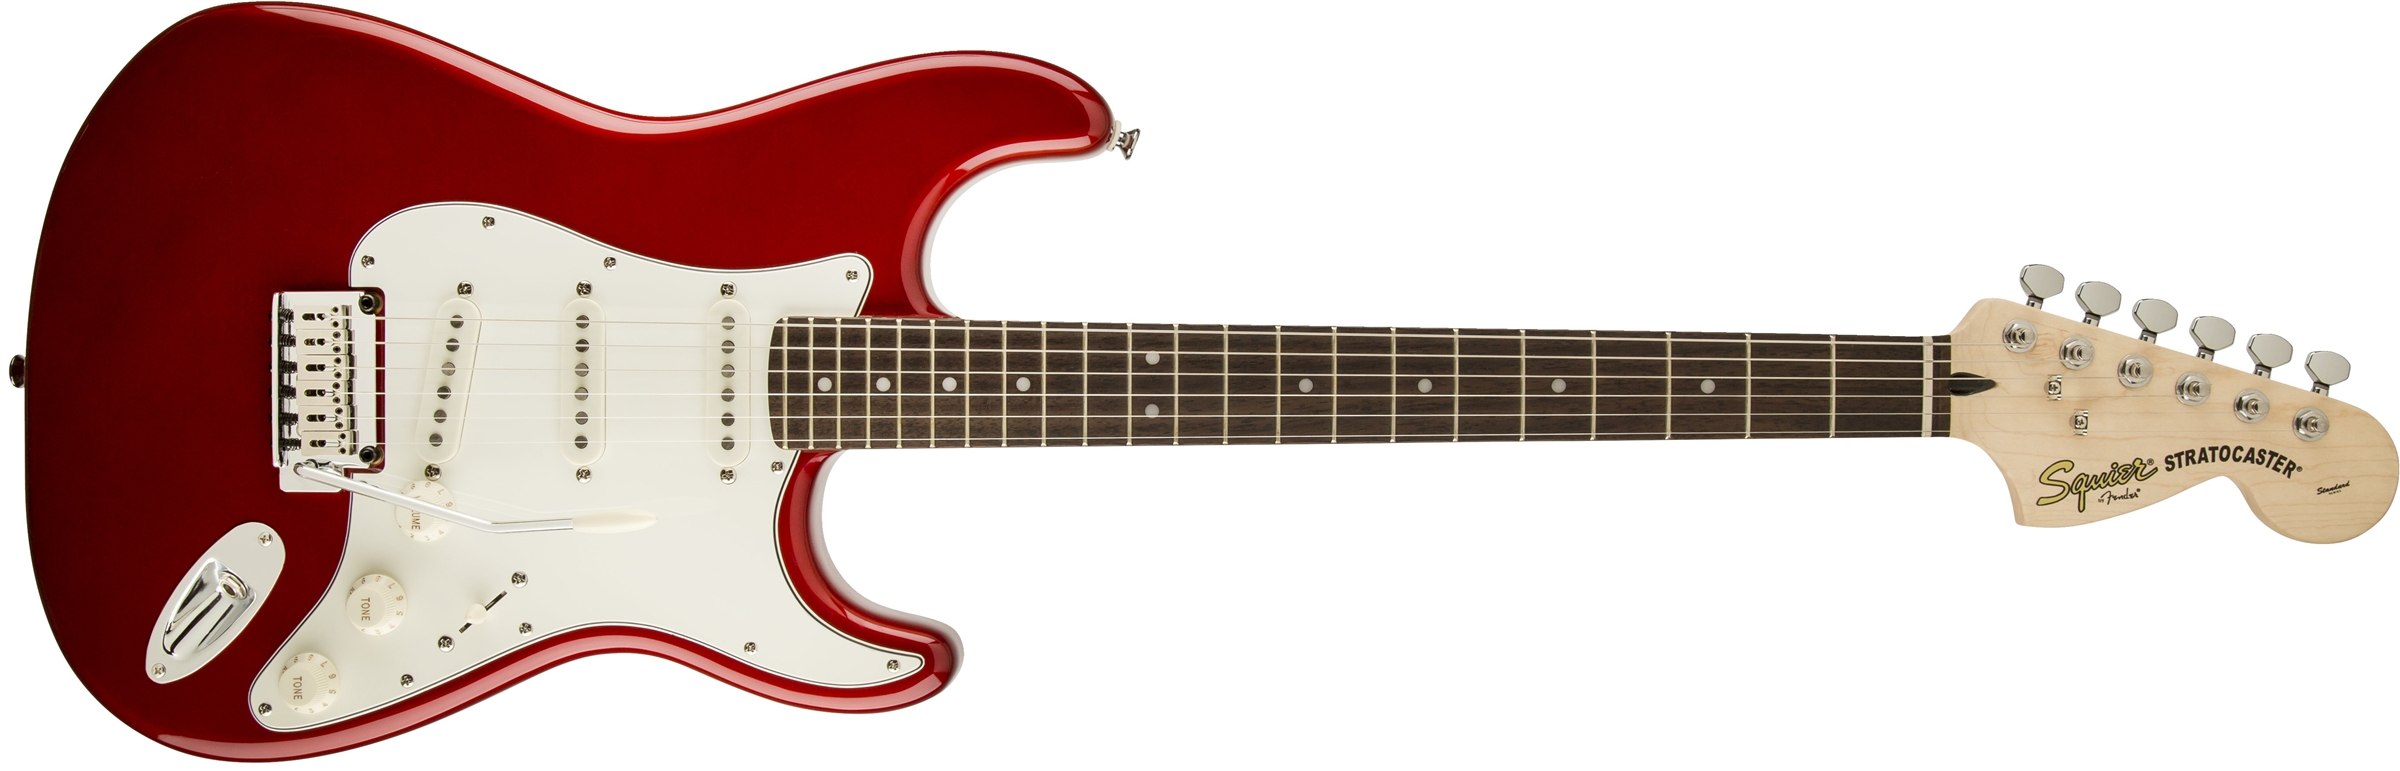 standard stratocaster squier electric guitars. Black Bedroom Furniture Sets. Home Design Ideas